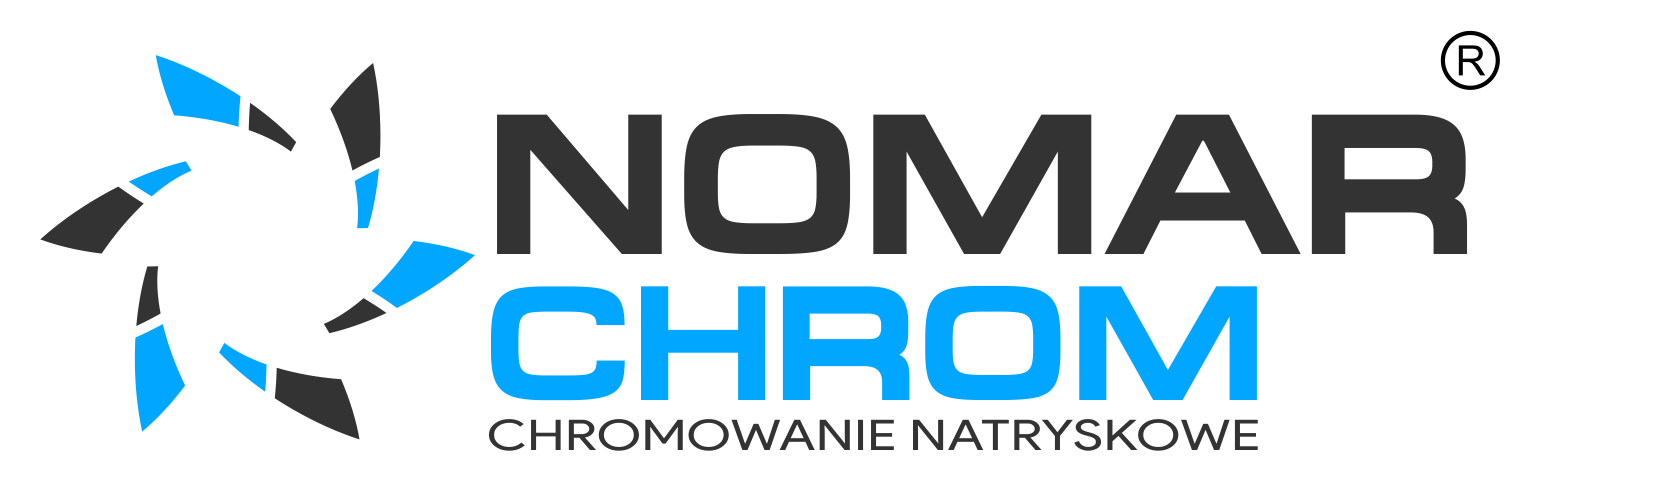 norman logo chrom